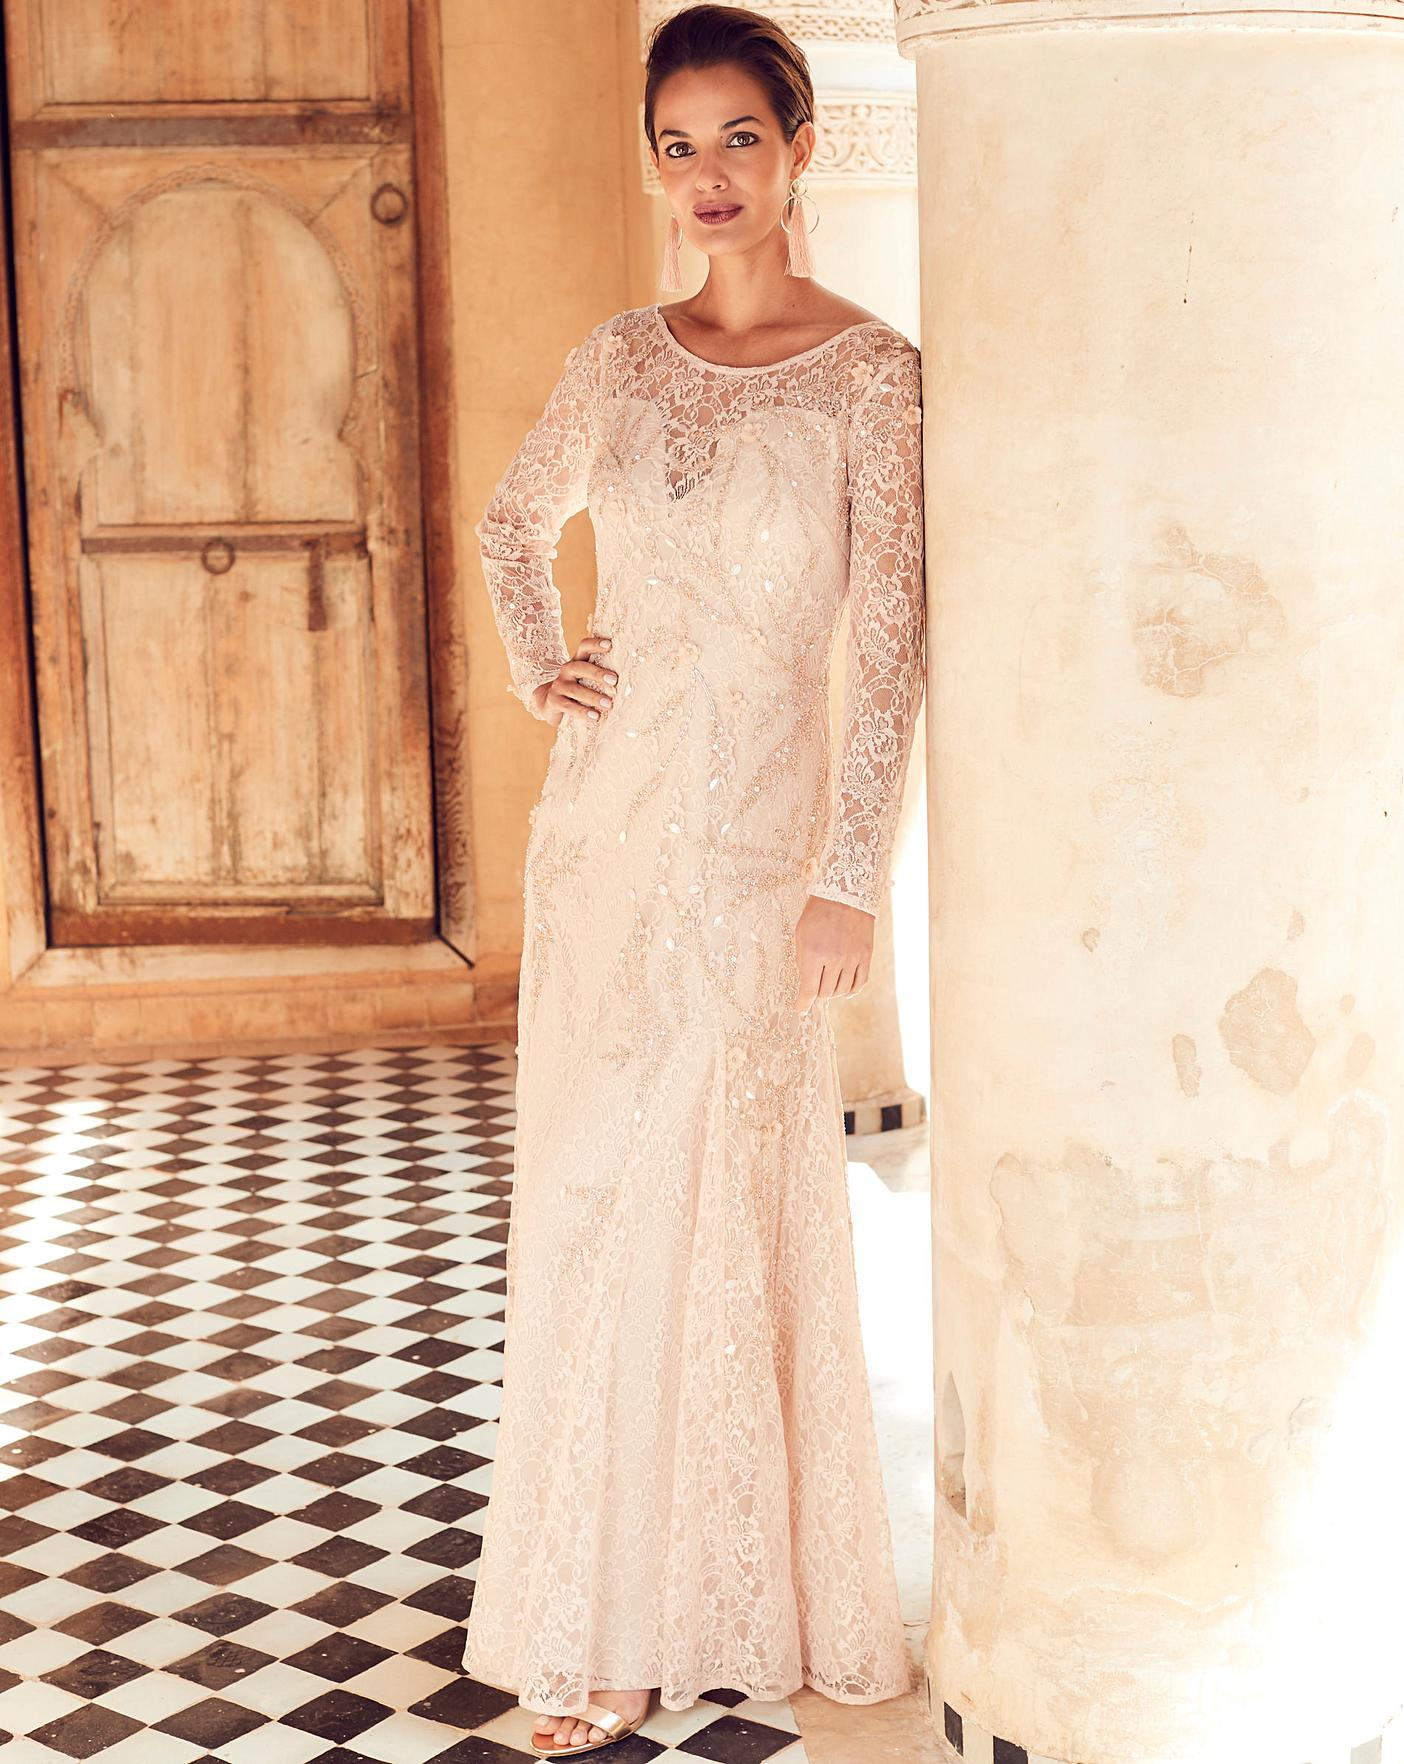 Joanna Hope Lace Beaded Maxi Dress Marisota